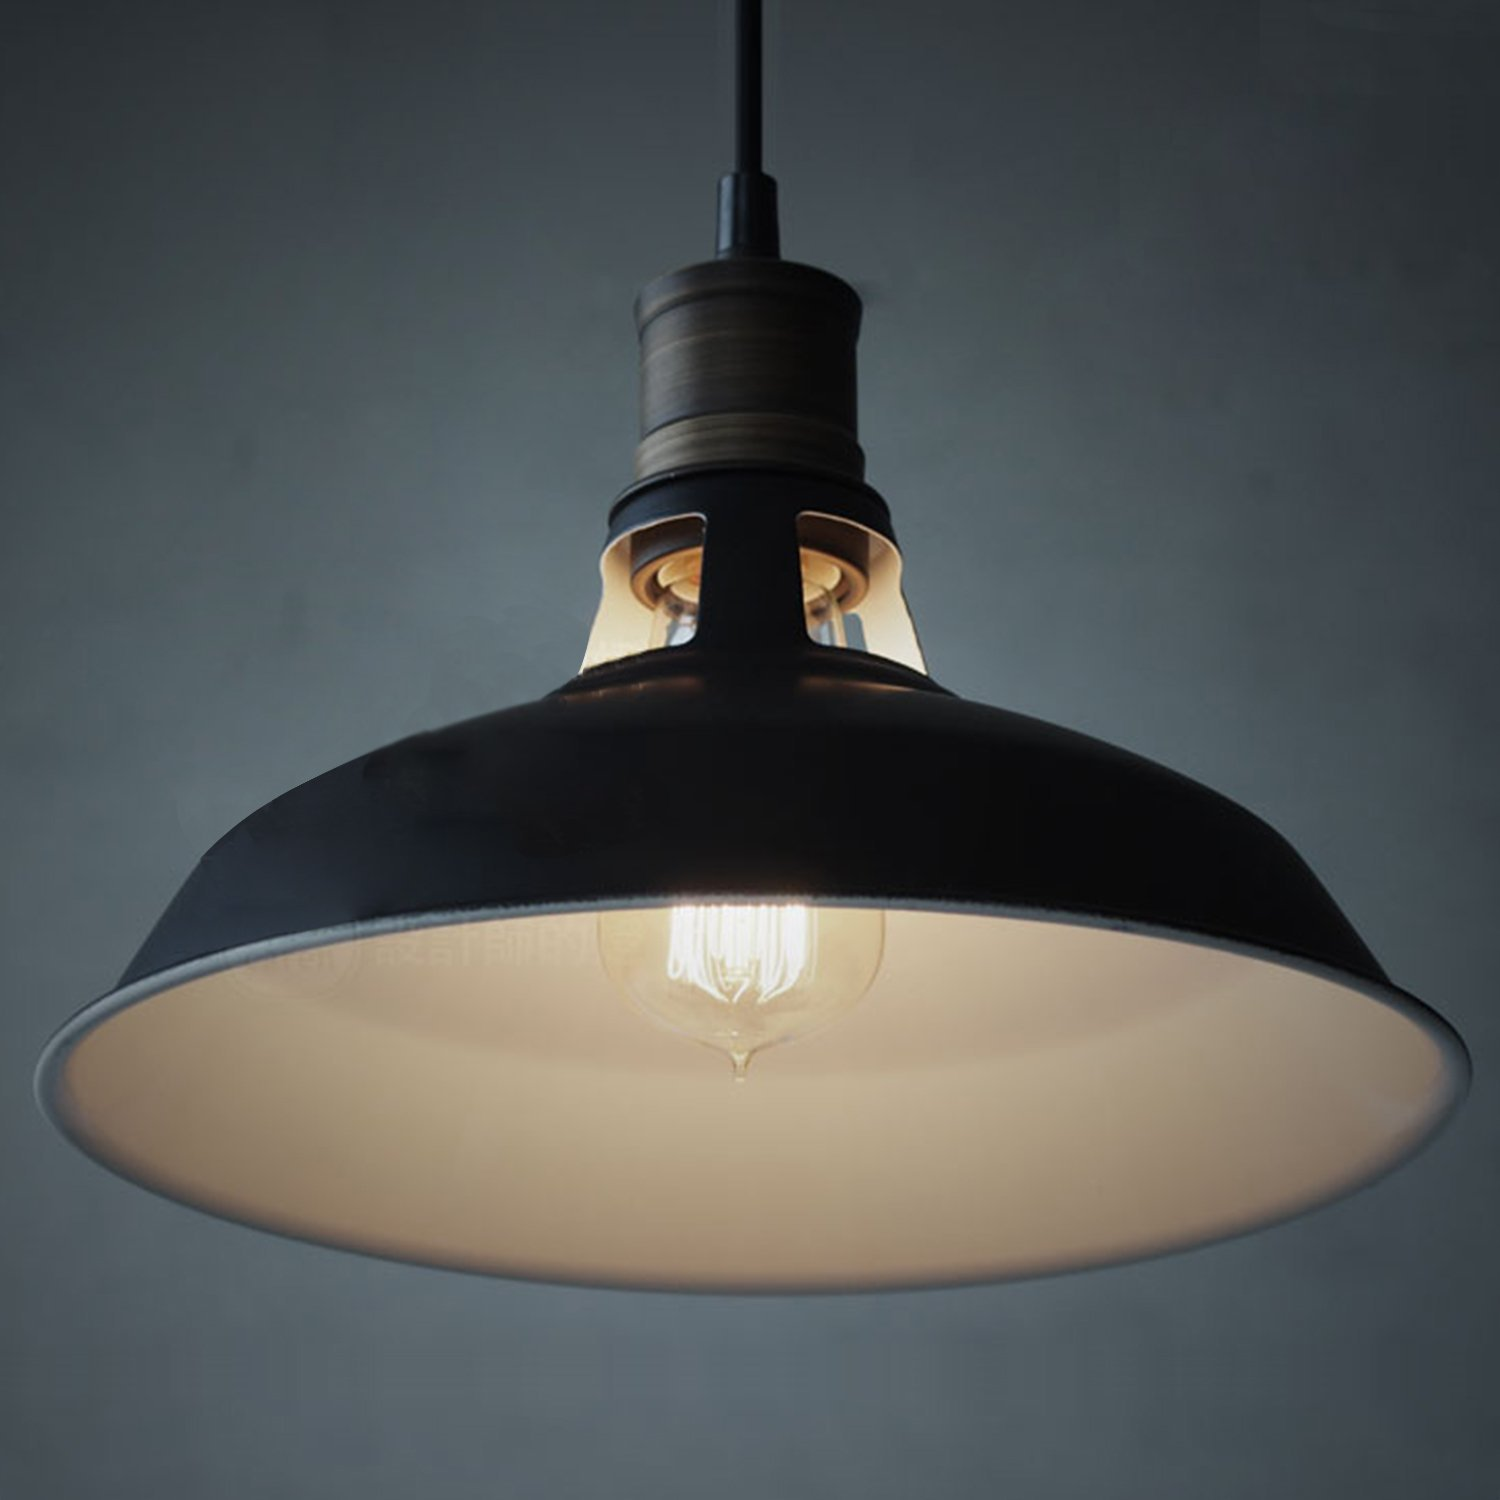 Lovely Black Industrial Light Part - 14: CLAXY Ecopower Industrial Barn Mini Metal Pendant Light 1 Light - -  Amazon.com